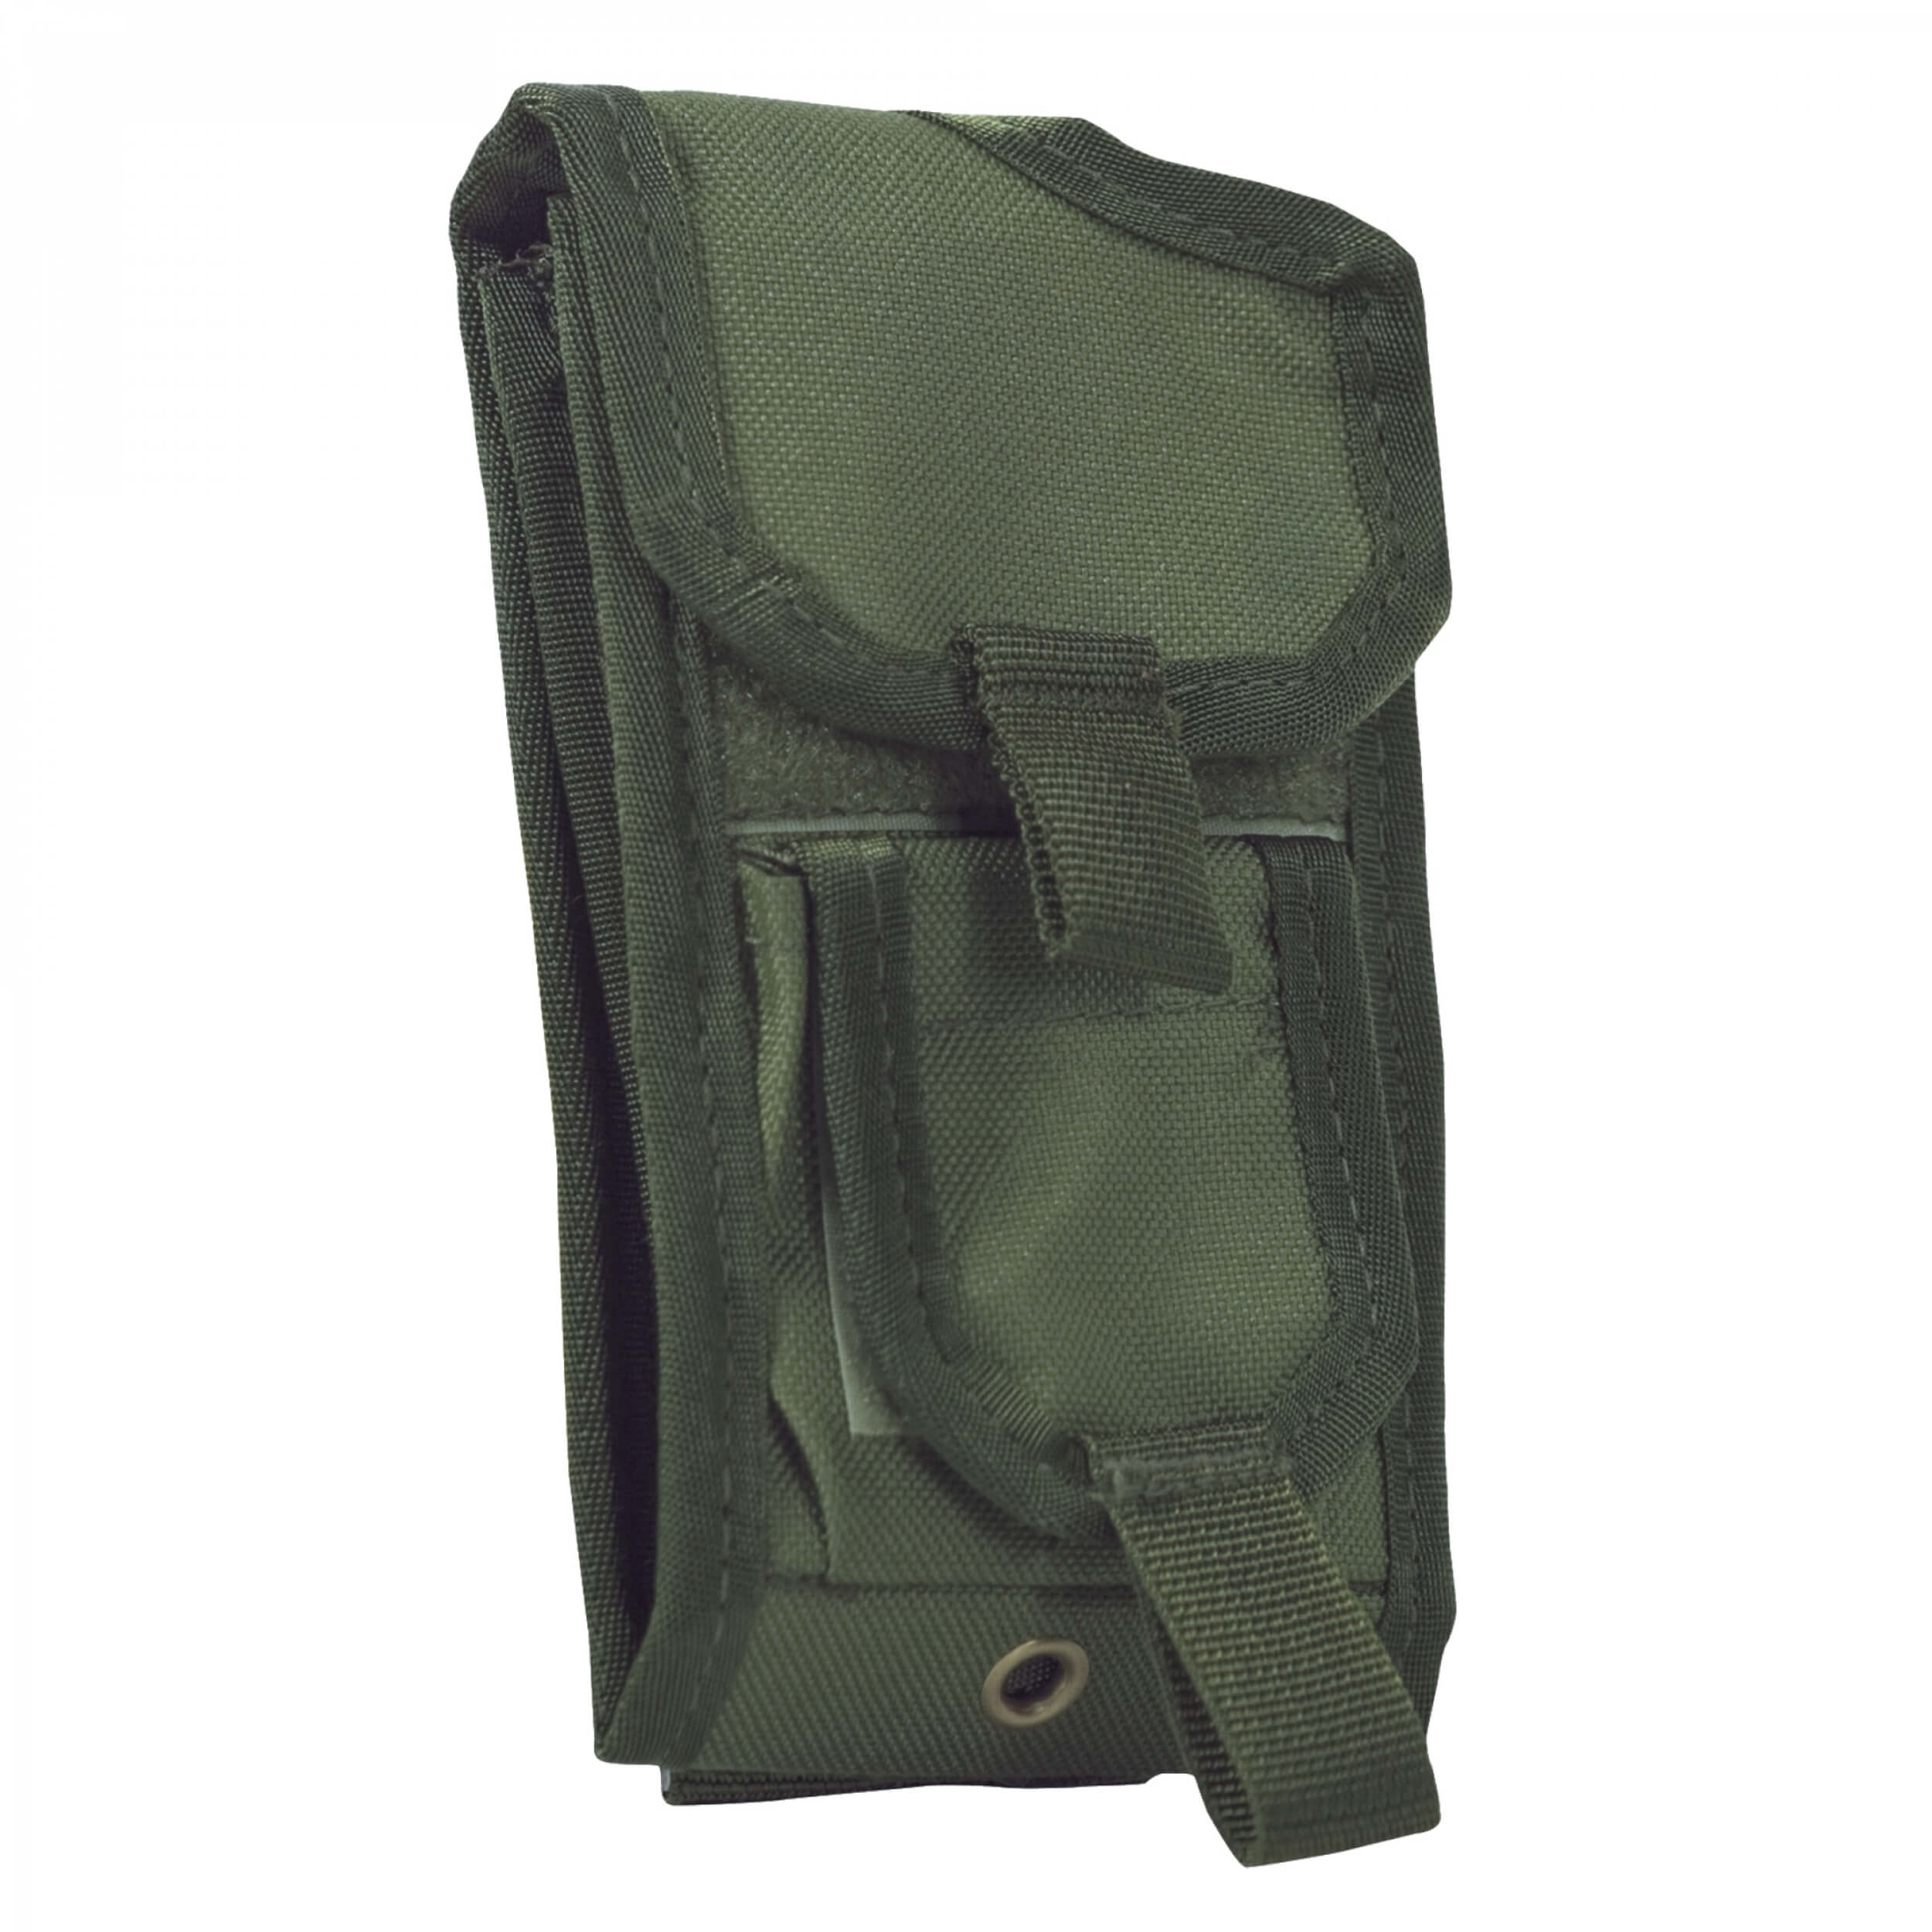 75Tactical GPS Tasche AX60 oliv